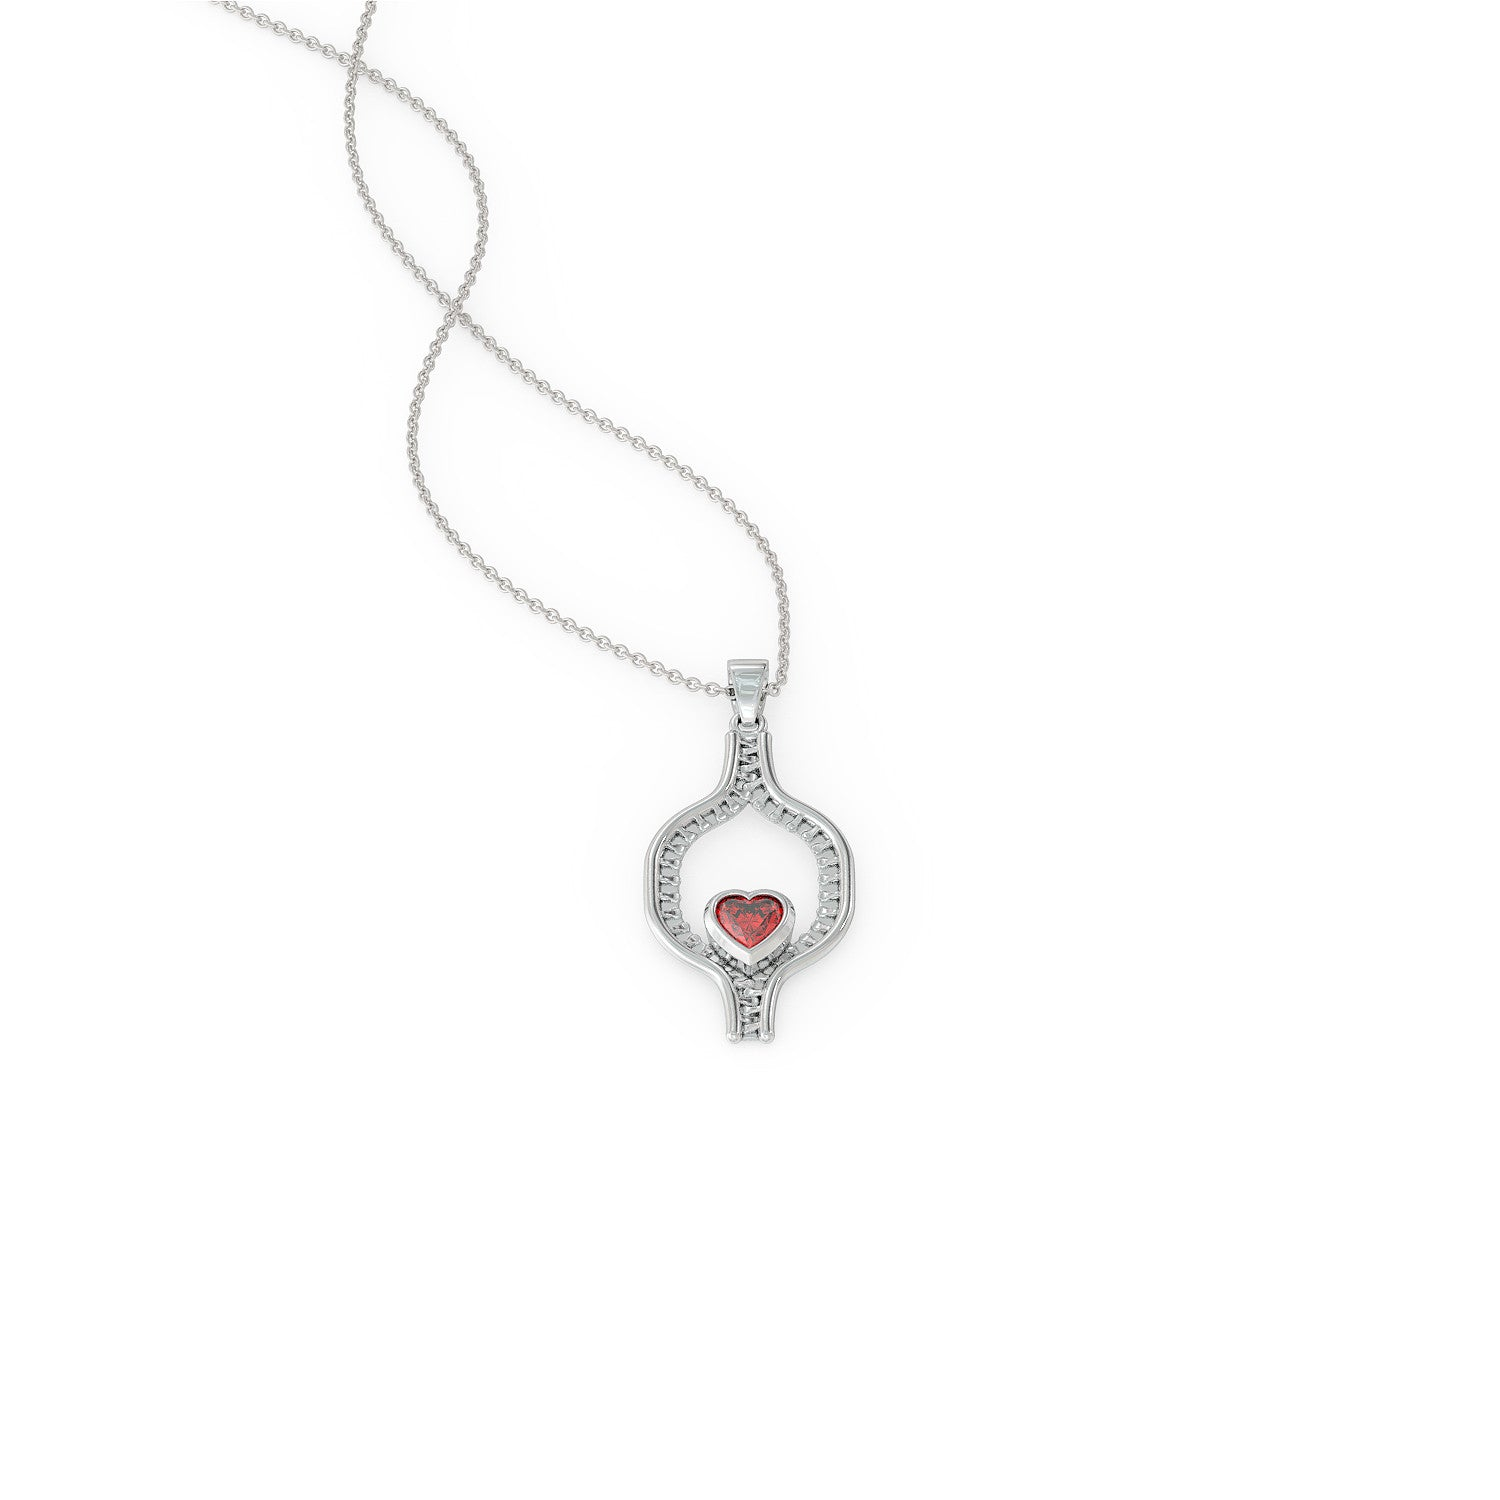 Zipper Sisters Necklace: Women with Congenital Heart Disease